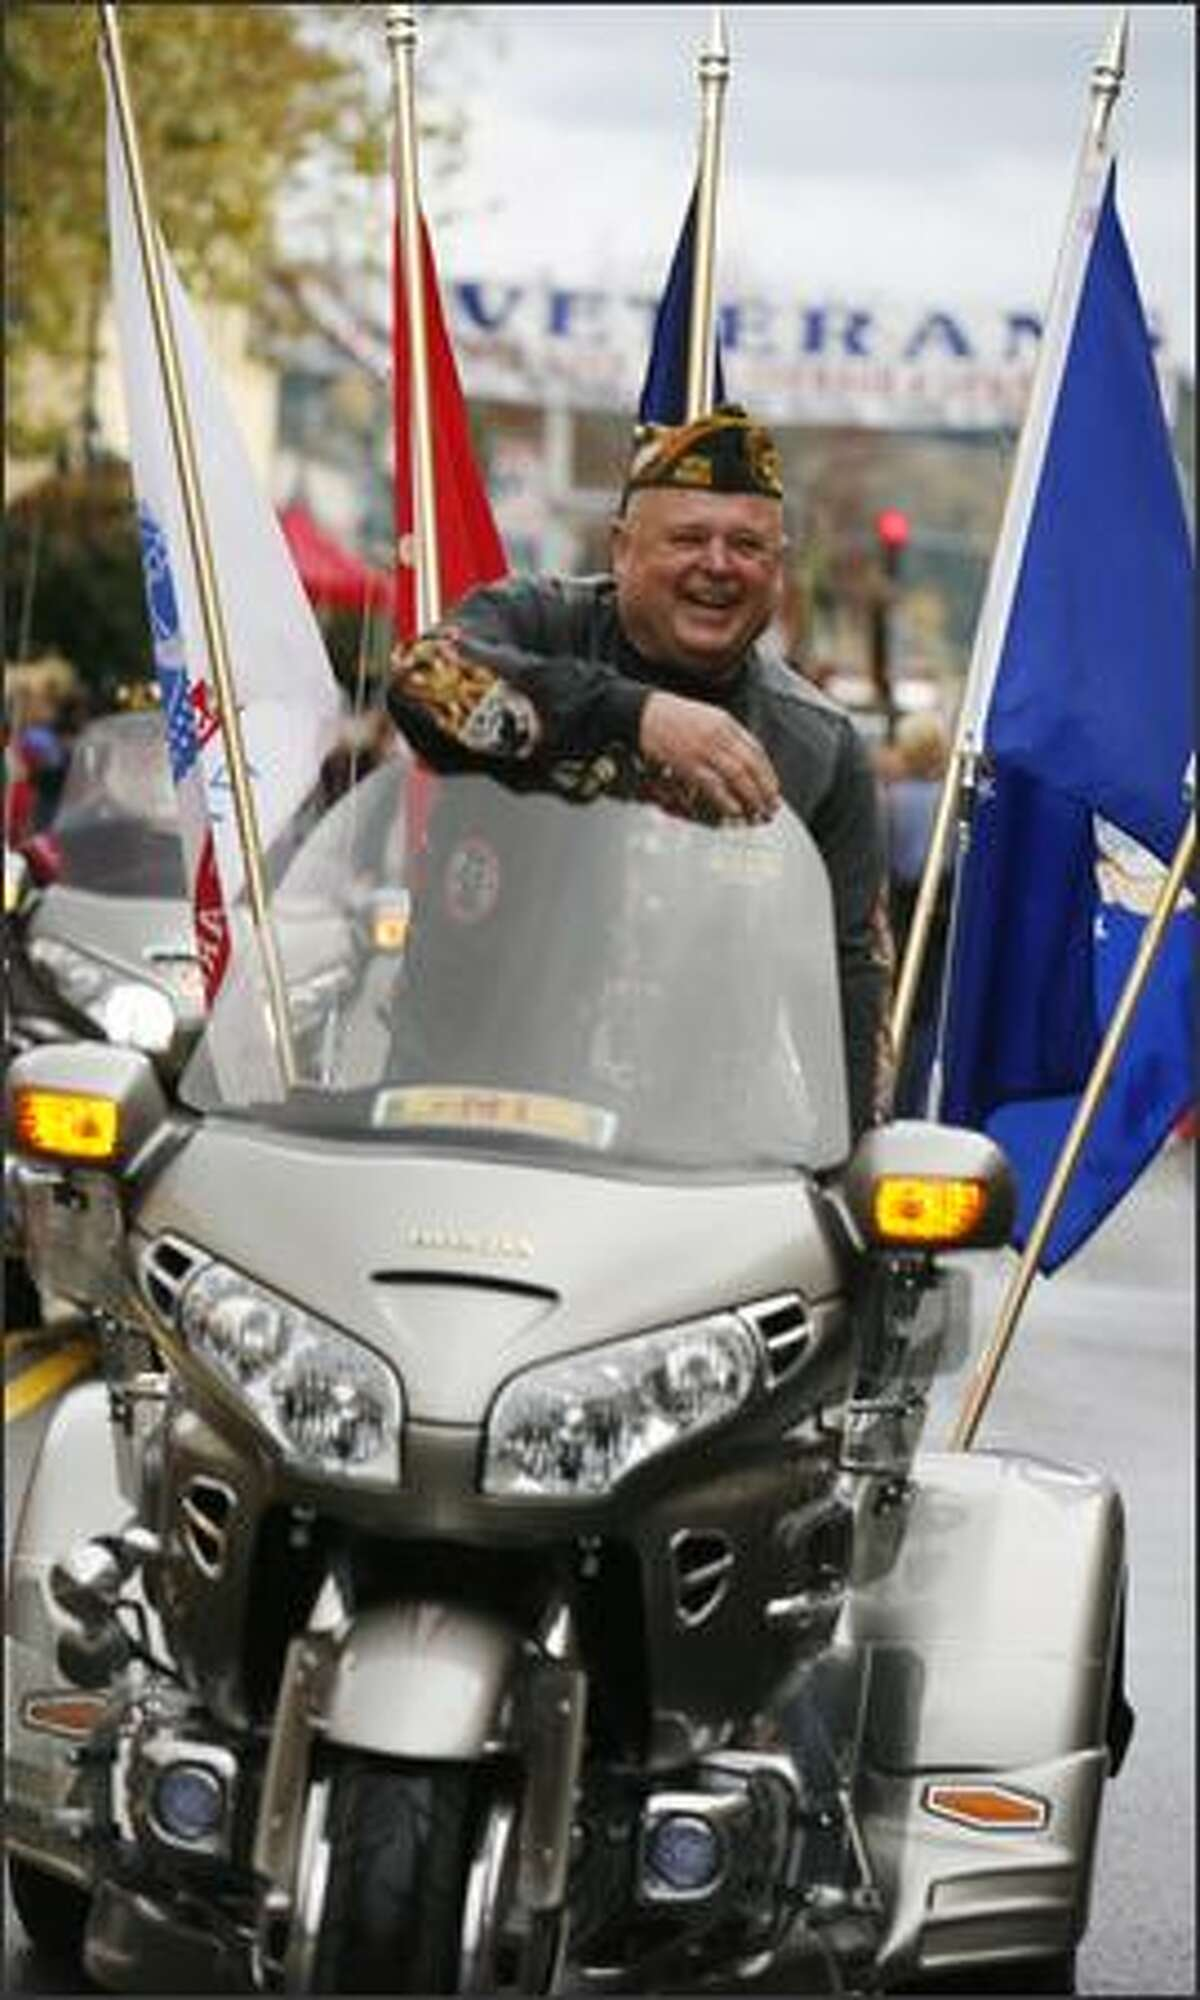 Vietnam veteran Andy Anderson, 66, rides his Honda Gold Wing Trident in the Auburn Veterans Day Parade.